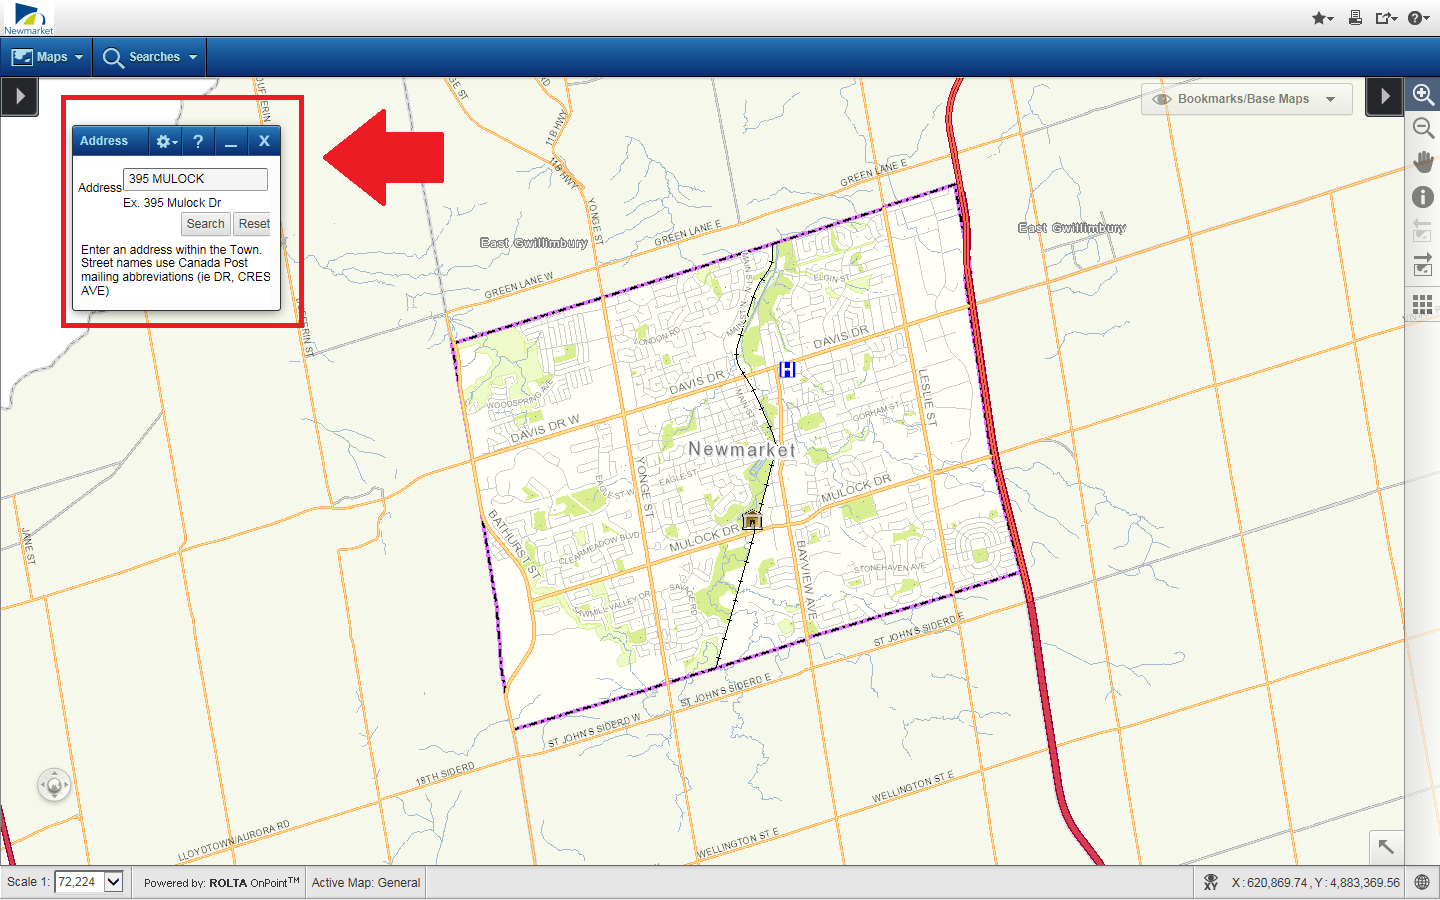 The Navigate Newmarket map, highlighting to input an address in the search field.